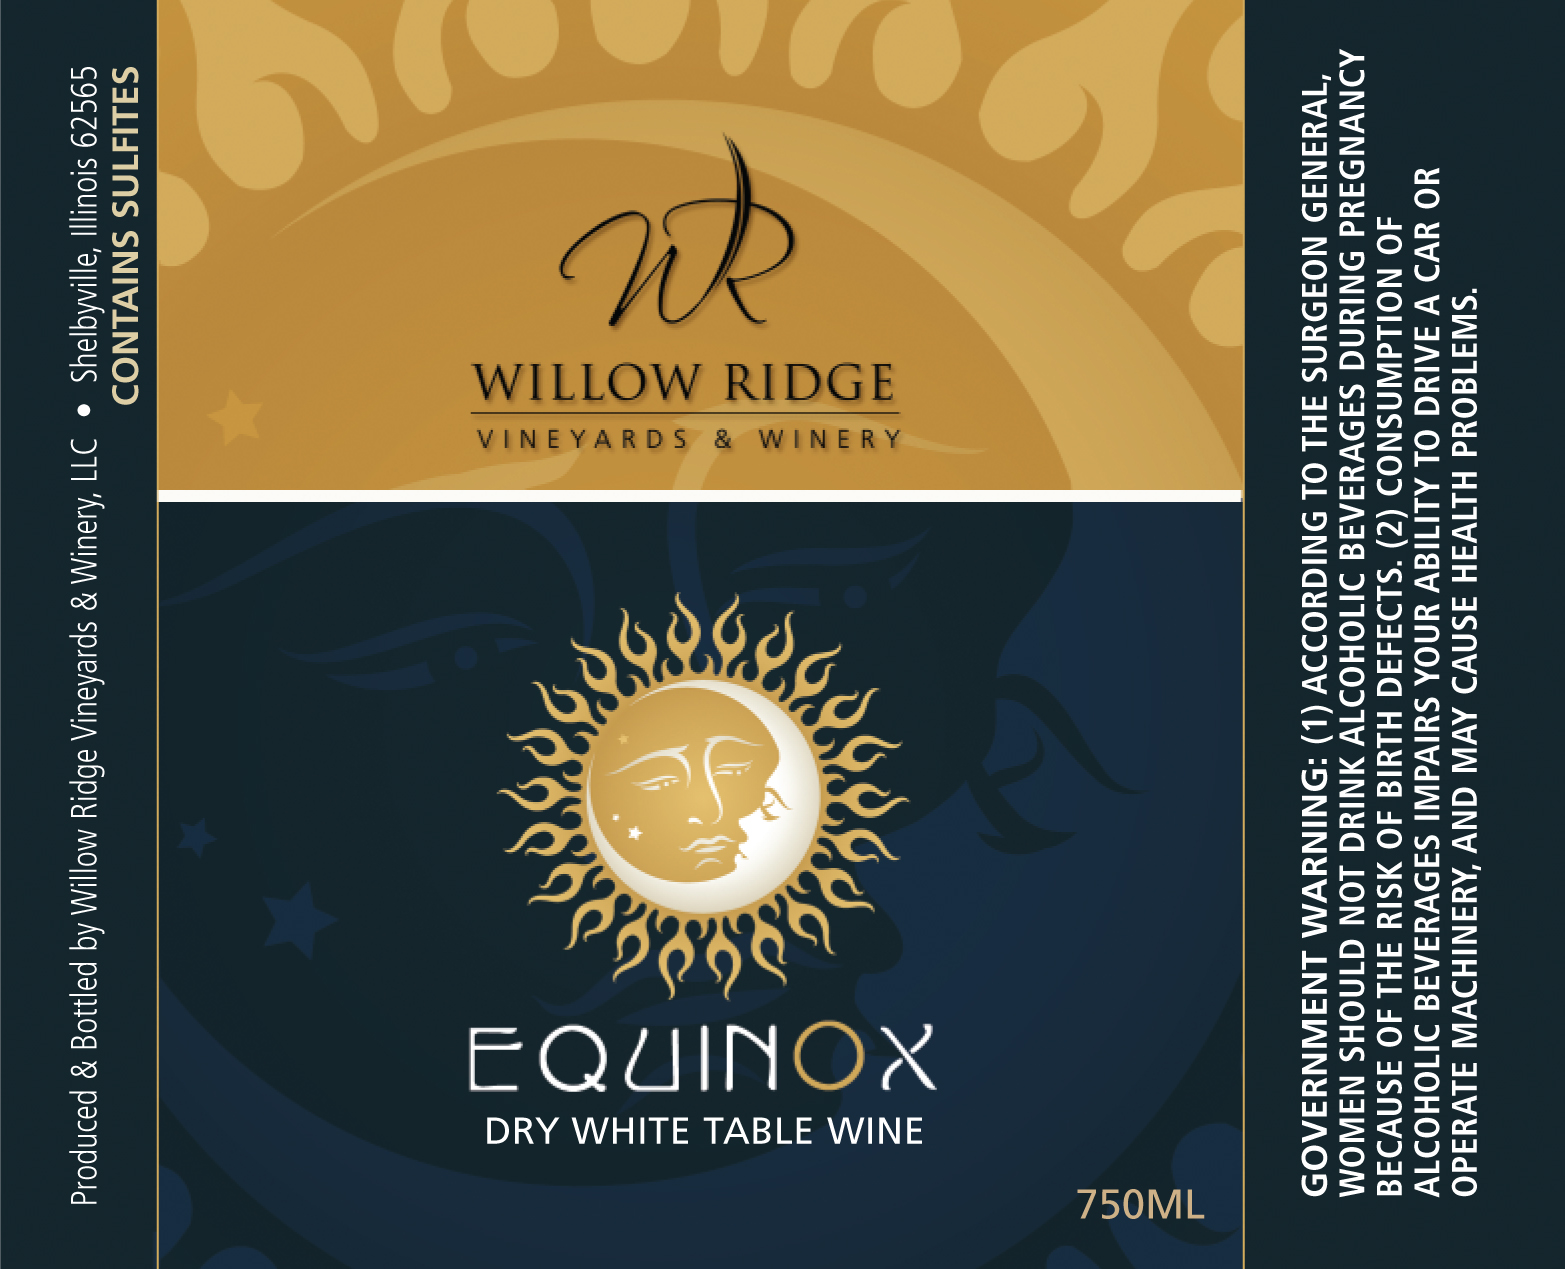 Willow Ridge Winery Equinox Wine